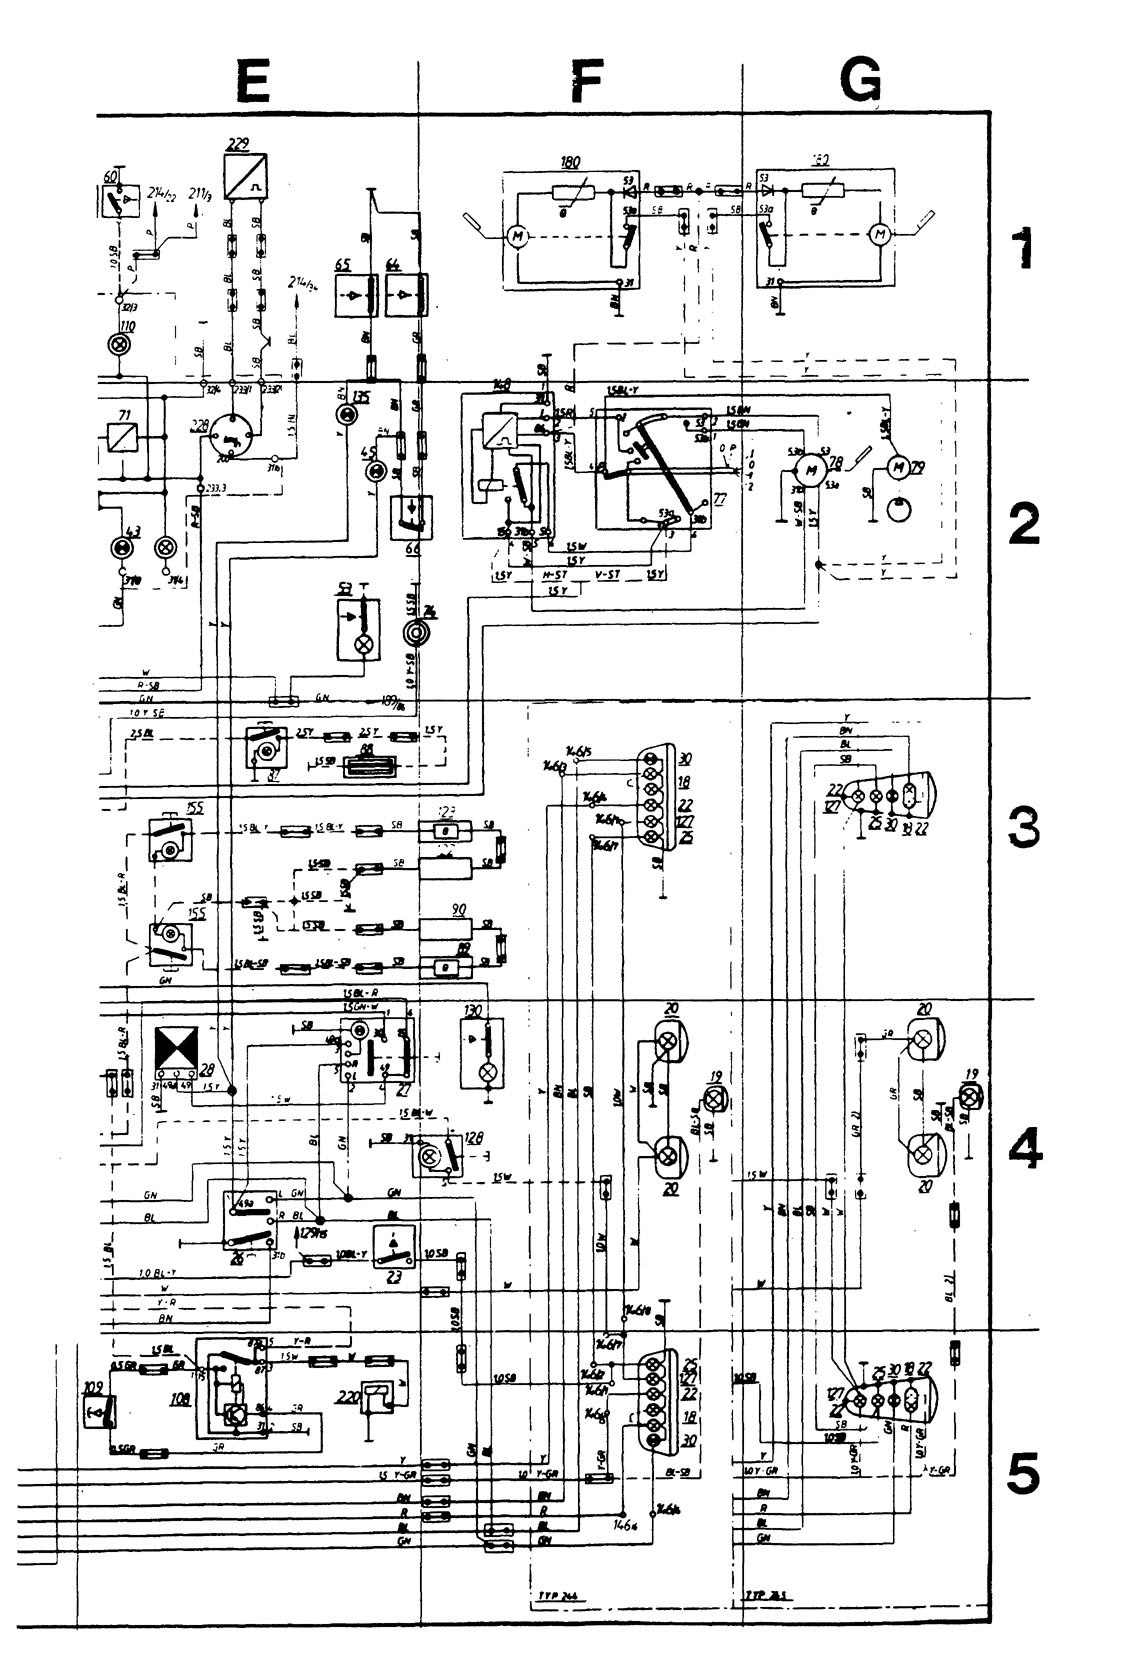 wiring diagram of a light switch